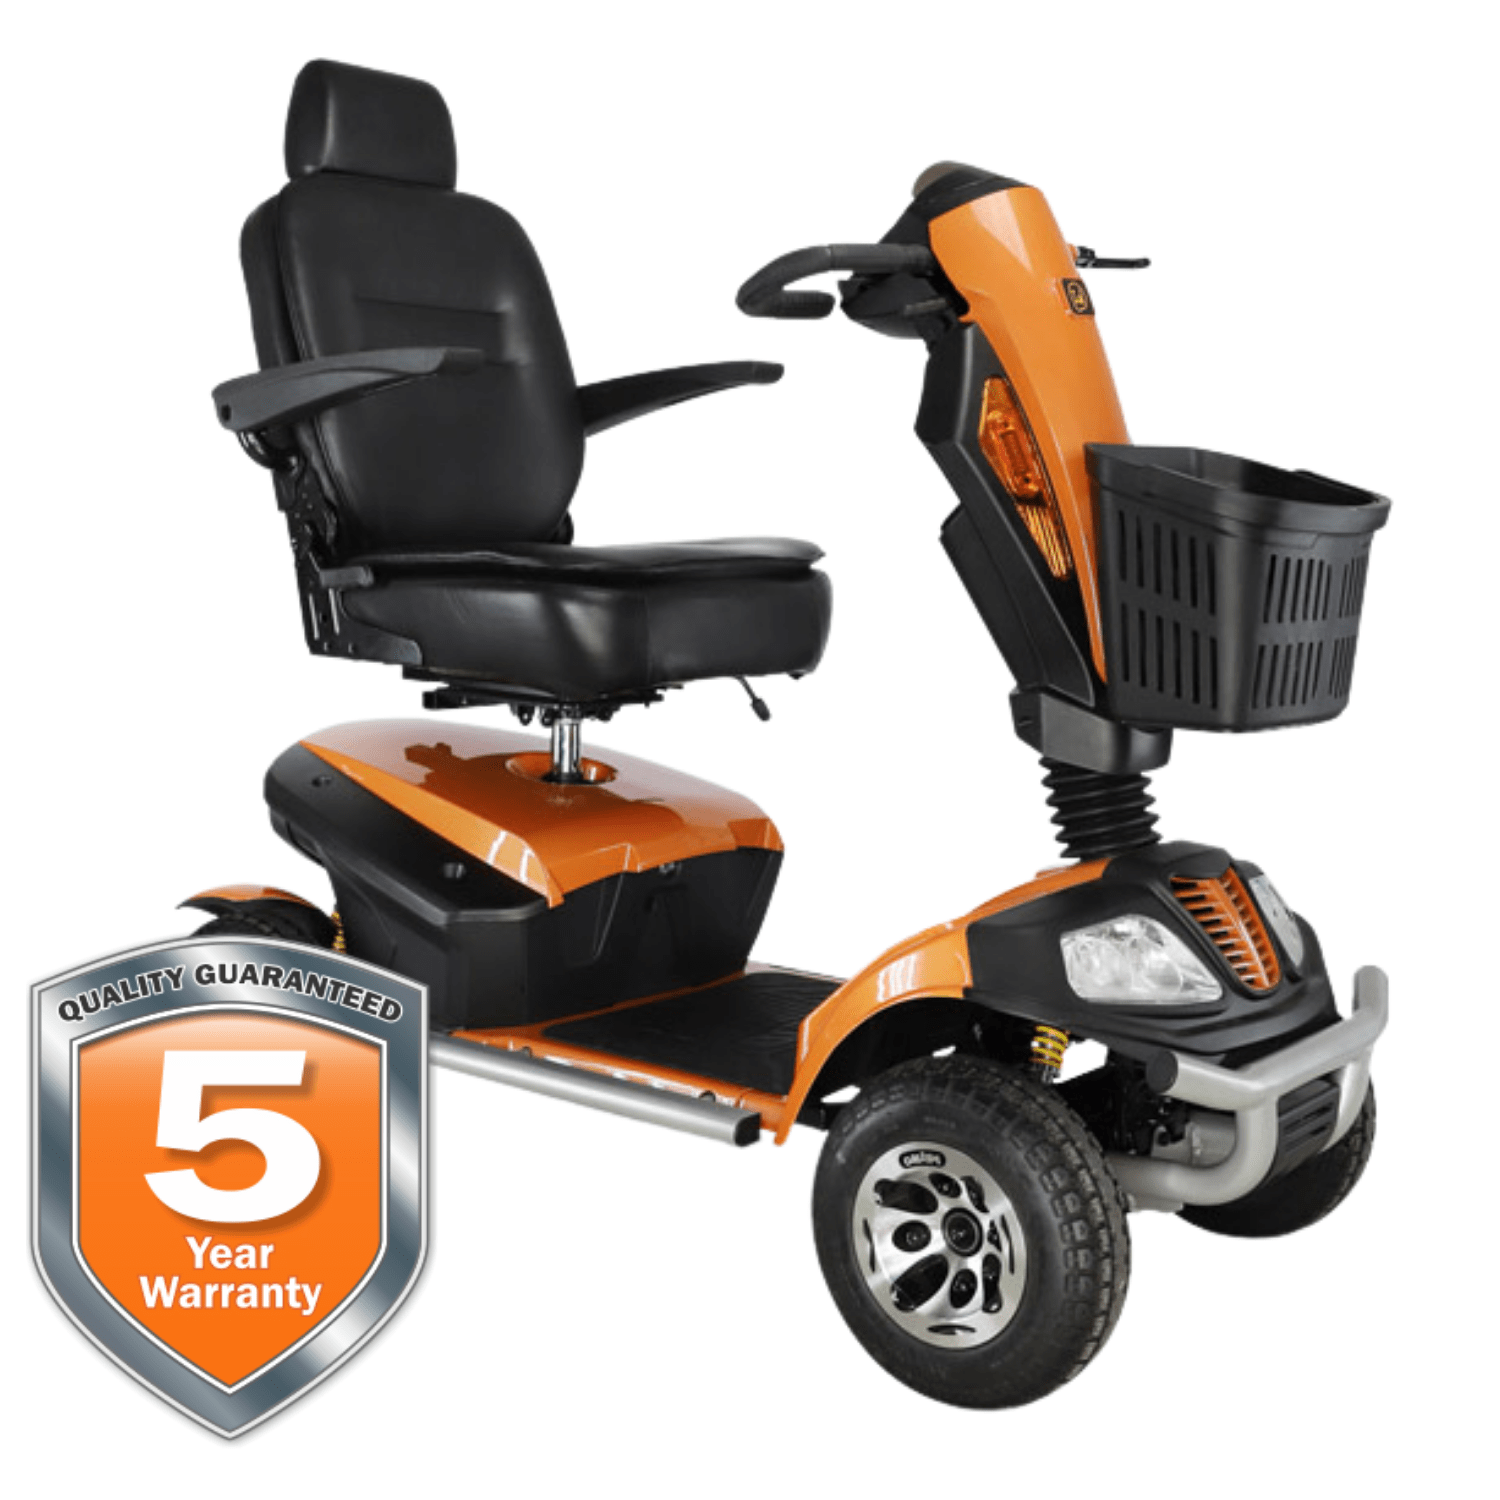 Top Gun Everest Mobility Scooter – Product Image